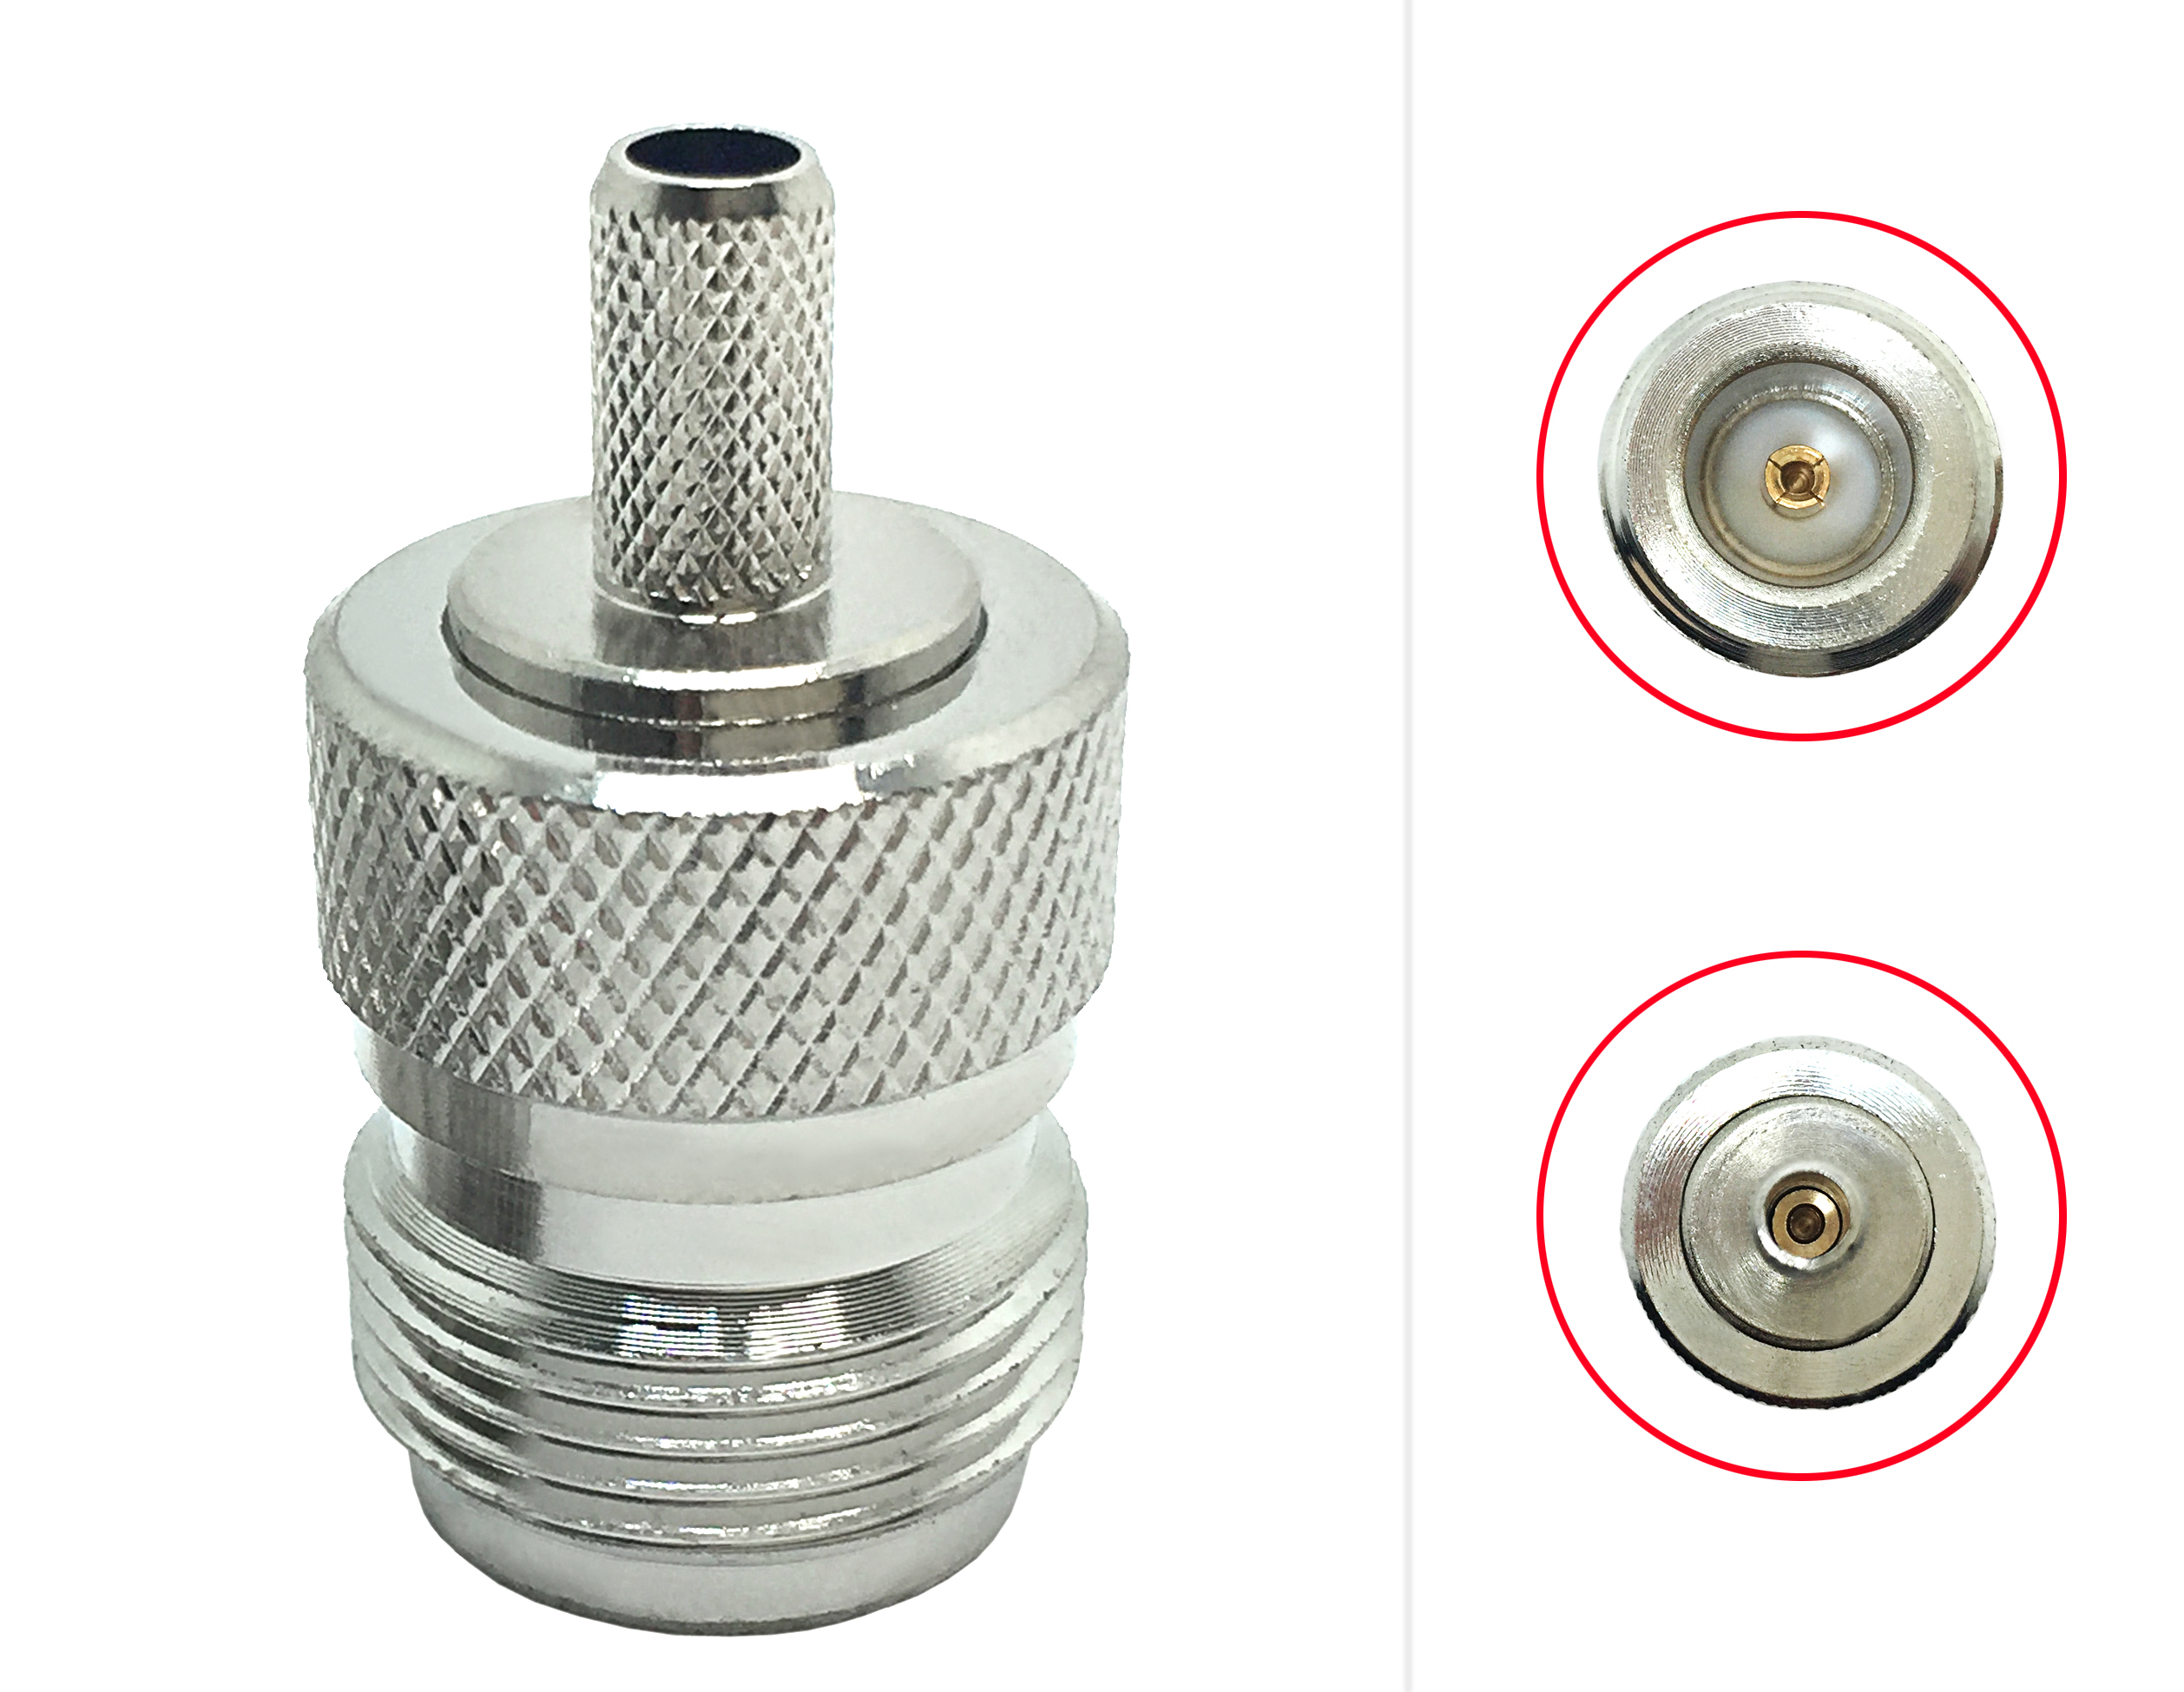 Jack / female B-H coaxial bulkhead n-j connector iso connector electrical crimp for LMR195 LMR200 RG58 RG400